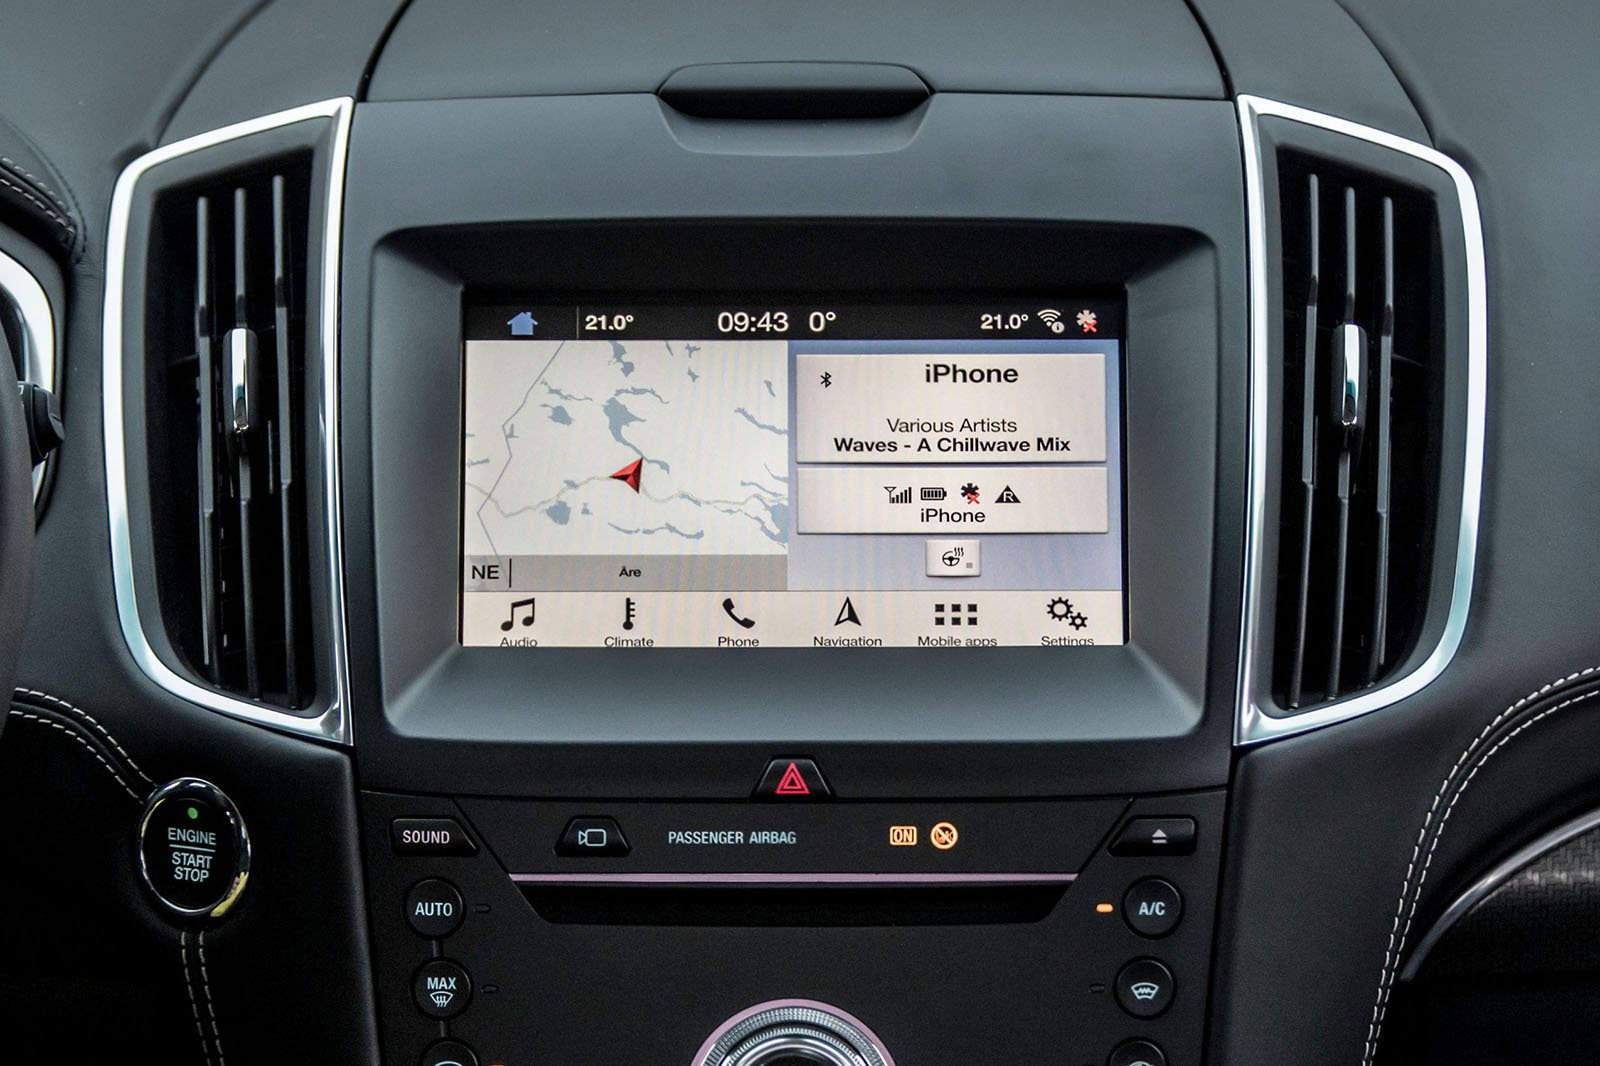 Fords Sync  System Has The Functions Youd Want And Expect Including Apple Carplay And Android Auto Smartphone Mirroring As Standard But It